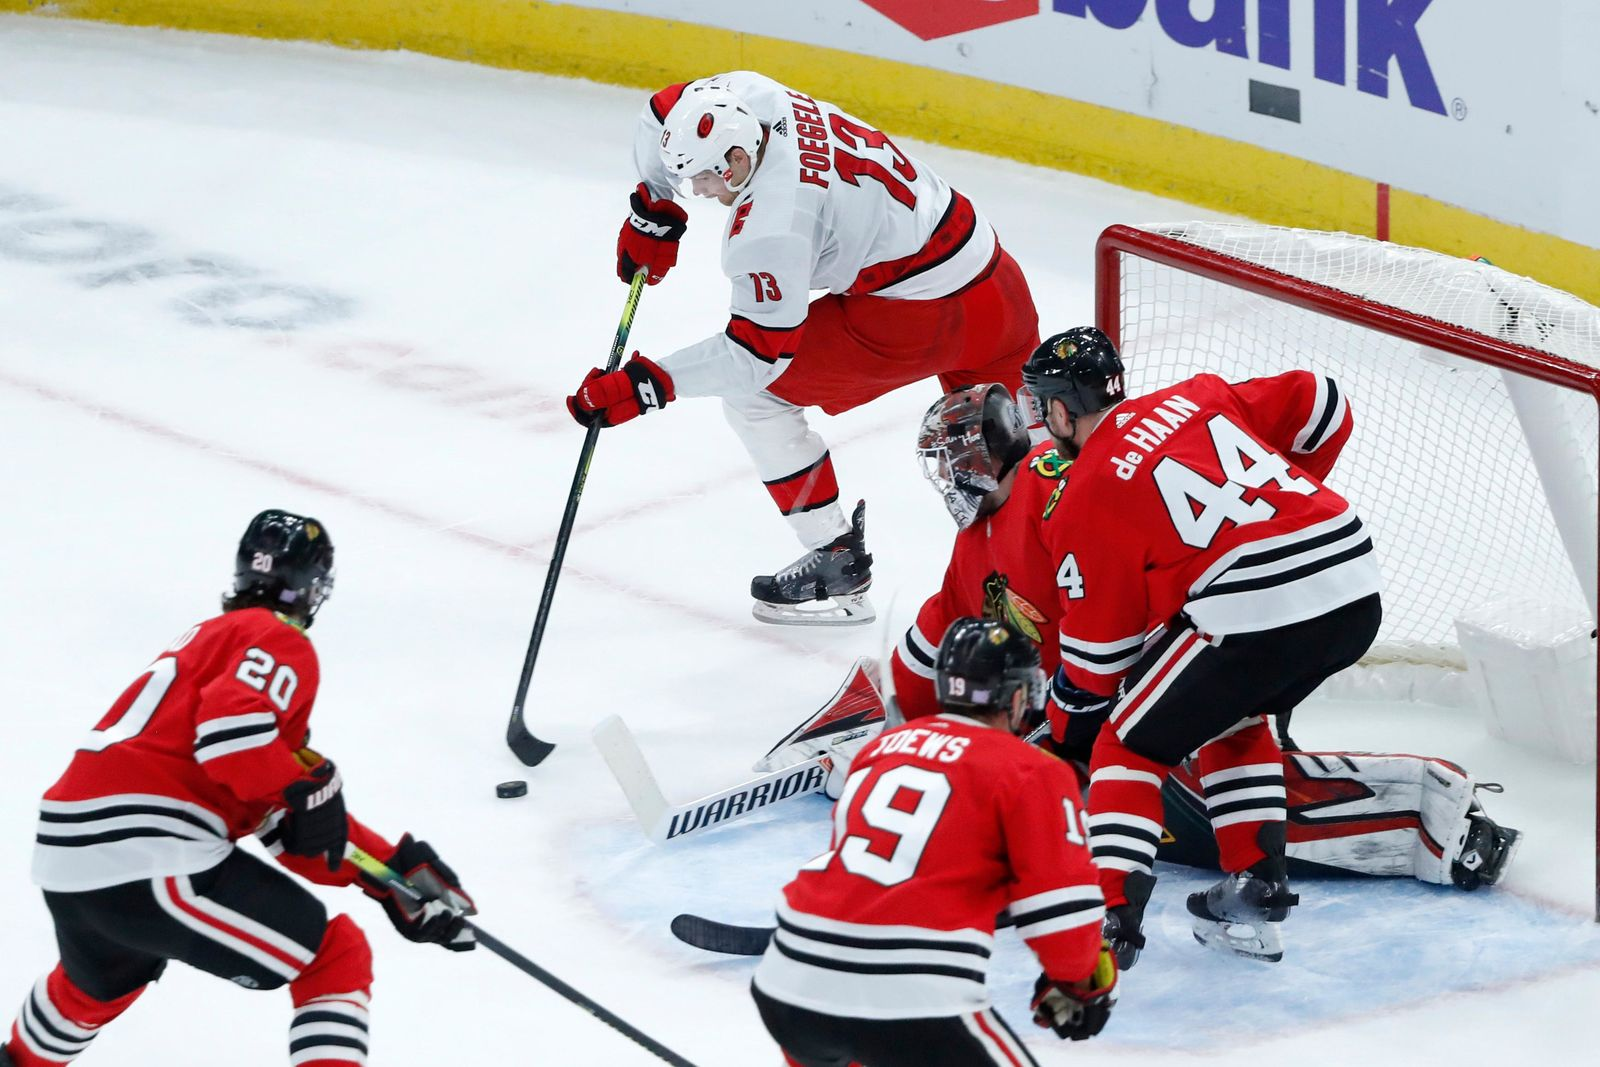 Carolina Hurricanes left wing Warren Foegele (13) takes a backhand shot on goal as Chicago Blackhawks defend during the first period of an NHL hockey game Tuesday, Nov. 19, 2019, in Chicago. (AP Photo/Charles Rex Arbogast)